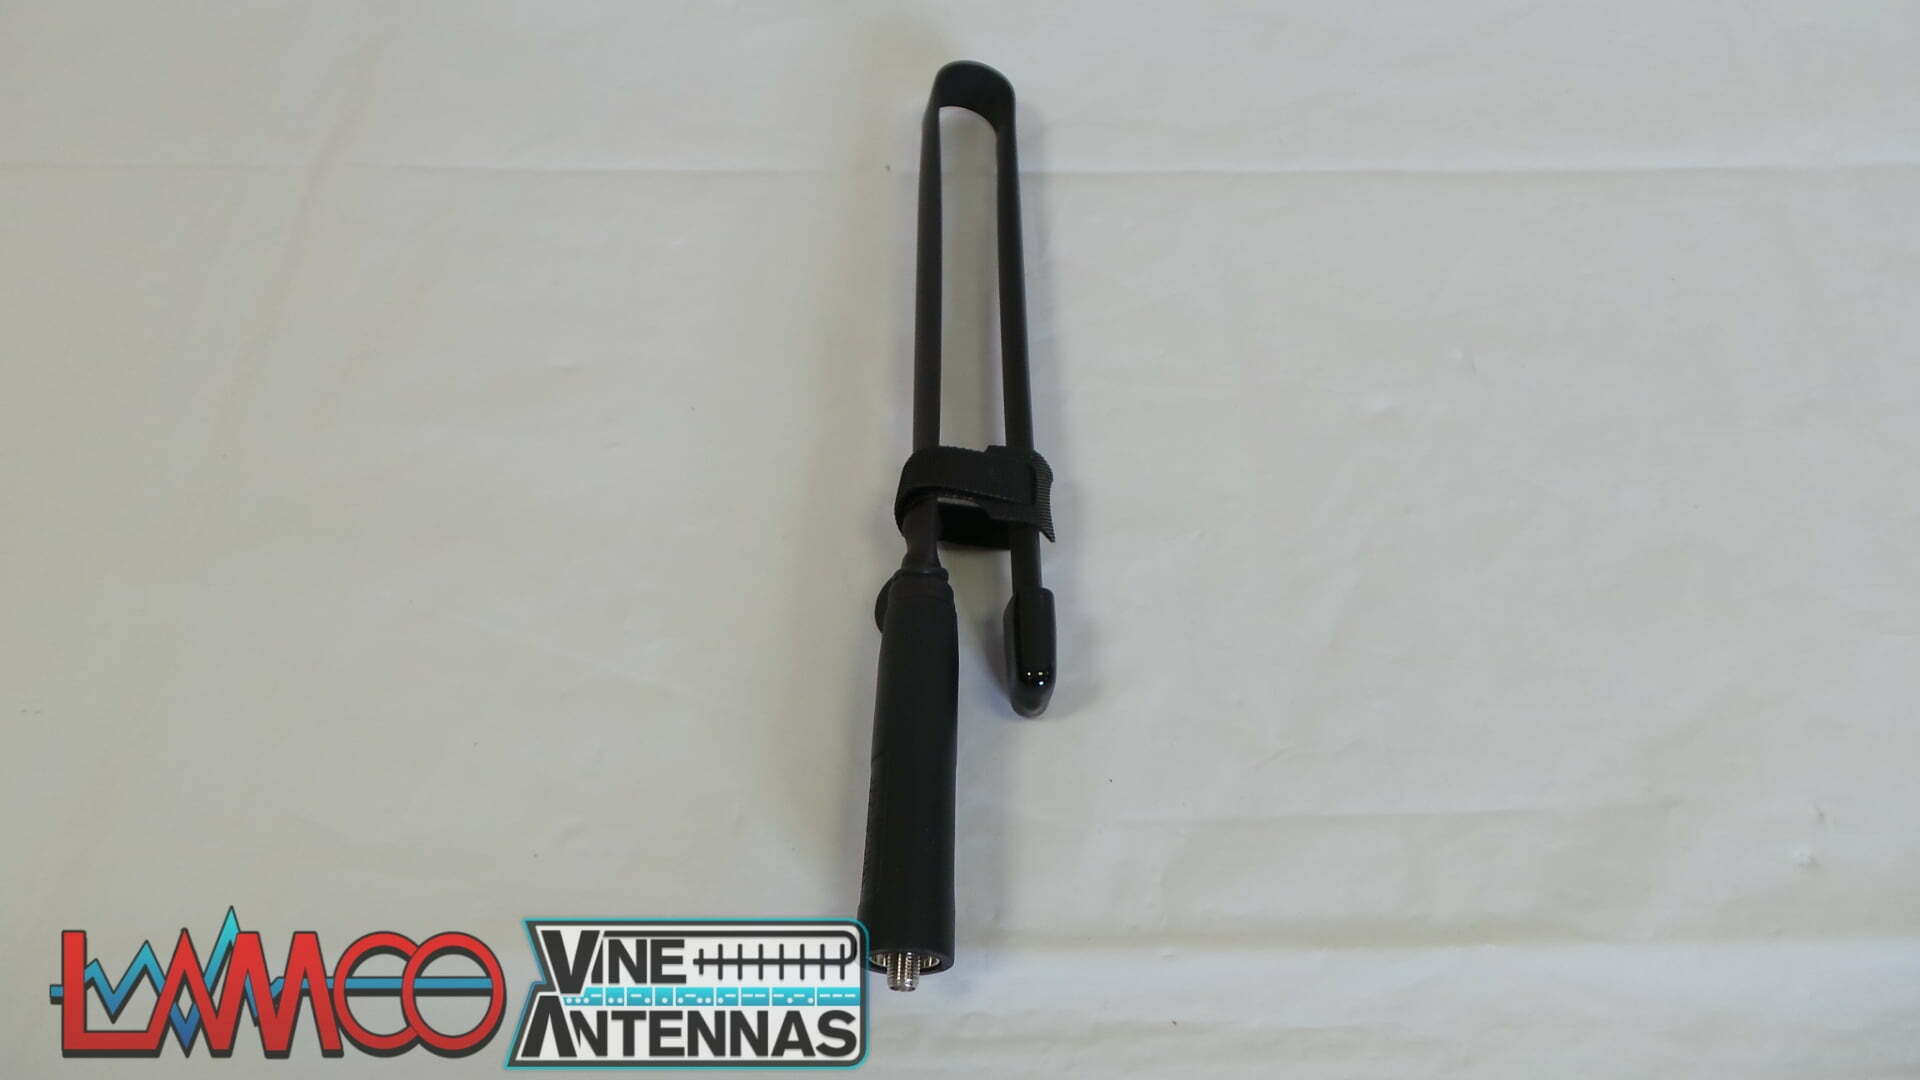 Foldable Tactical Antenna Sold As Seen No Warranty Use As Spares or Repairs Junksale Barnsley